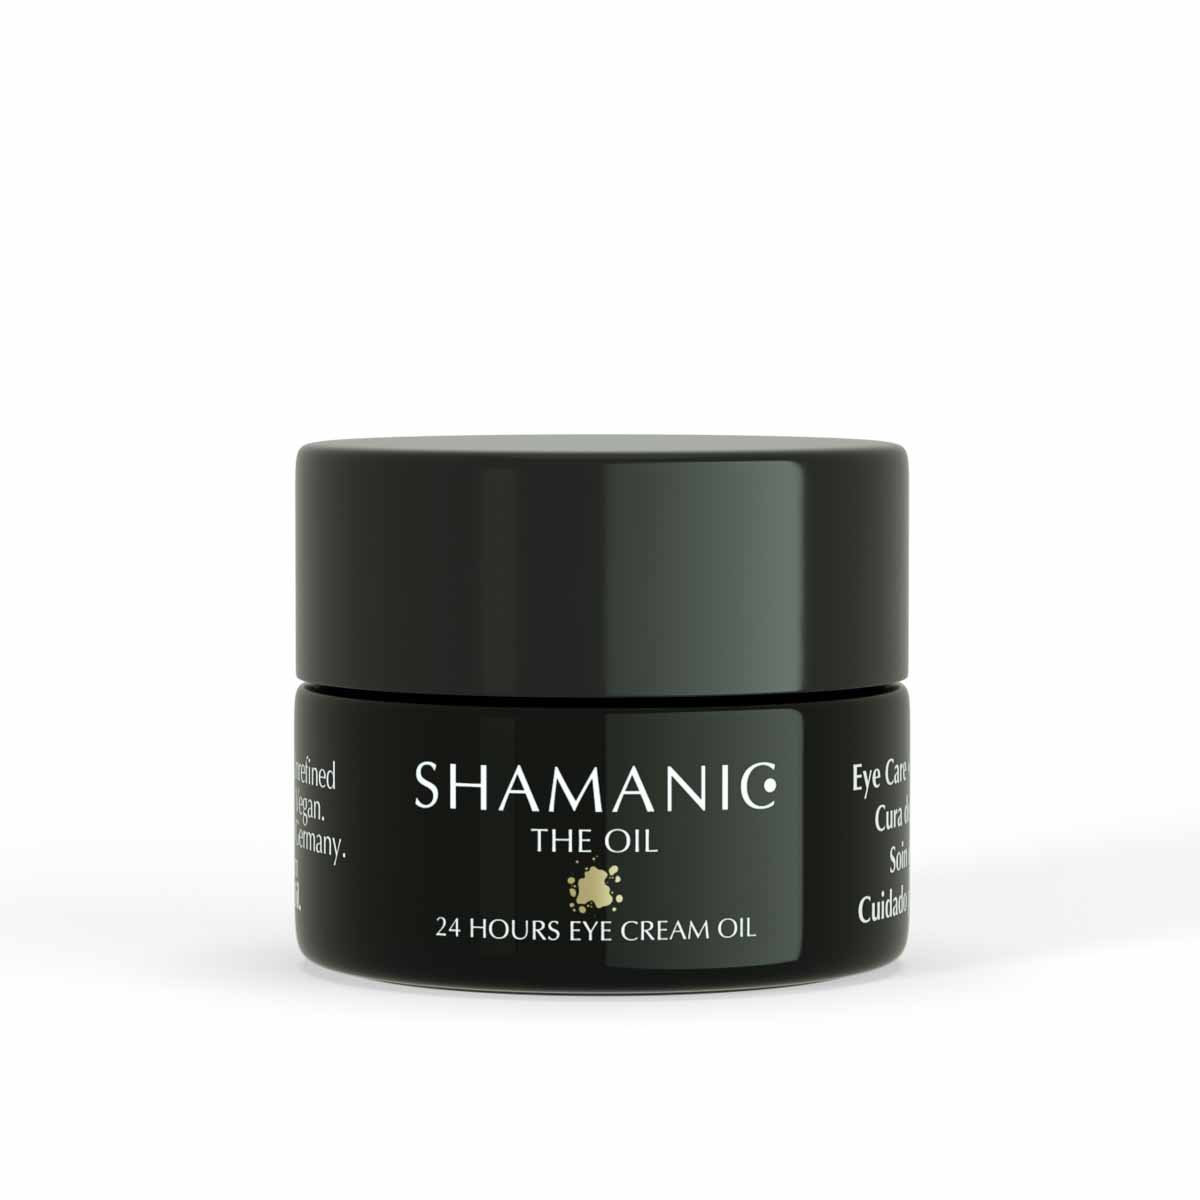 24 Hours Eye Cream Oil Augenmaske von Shamanic